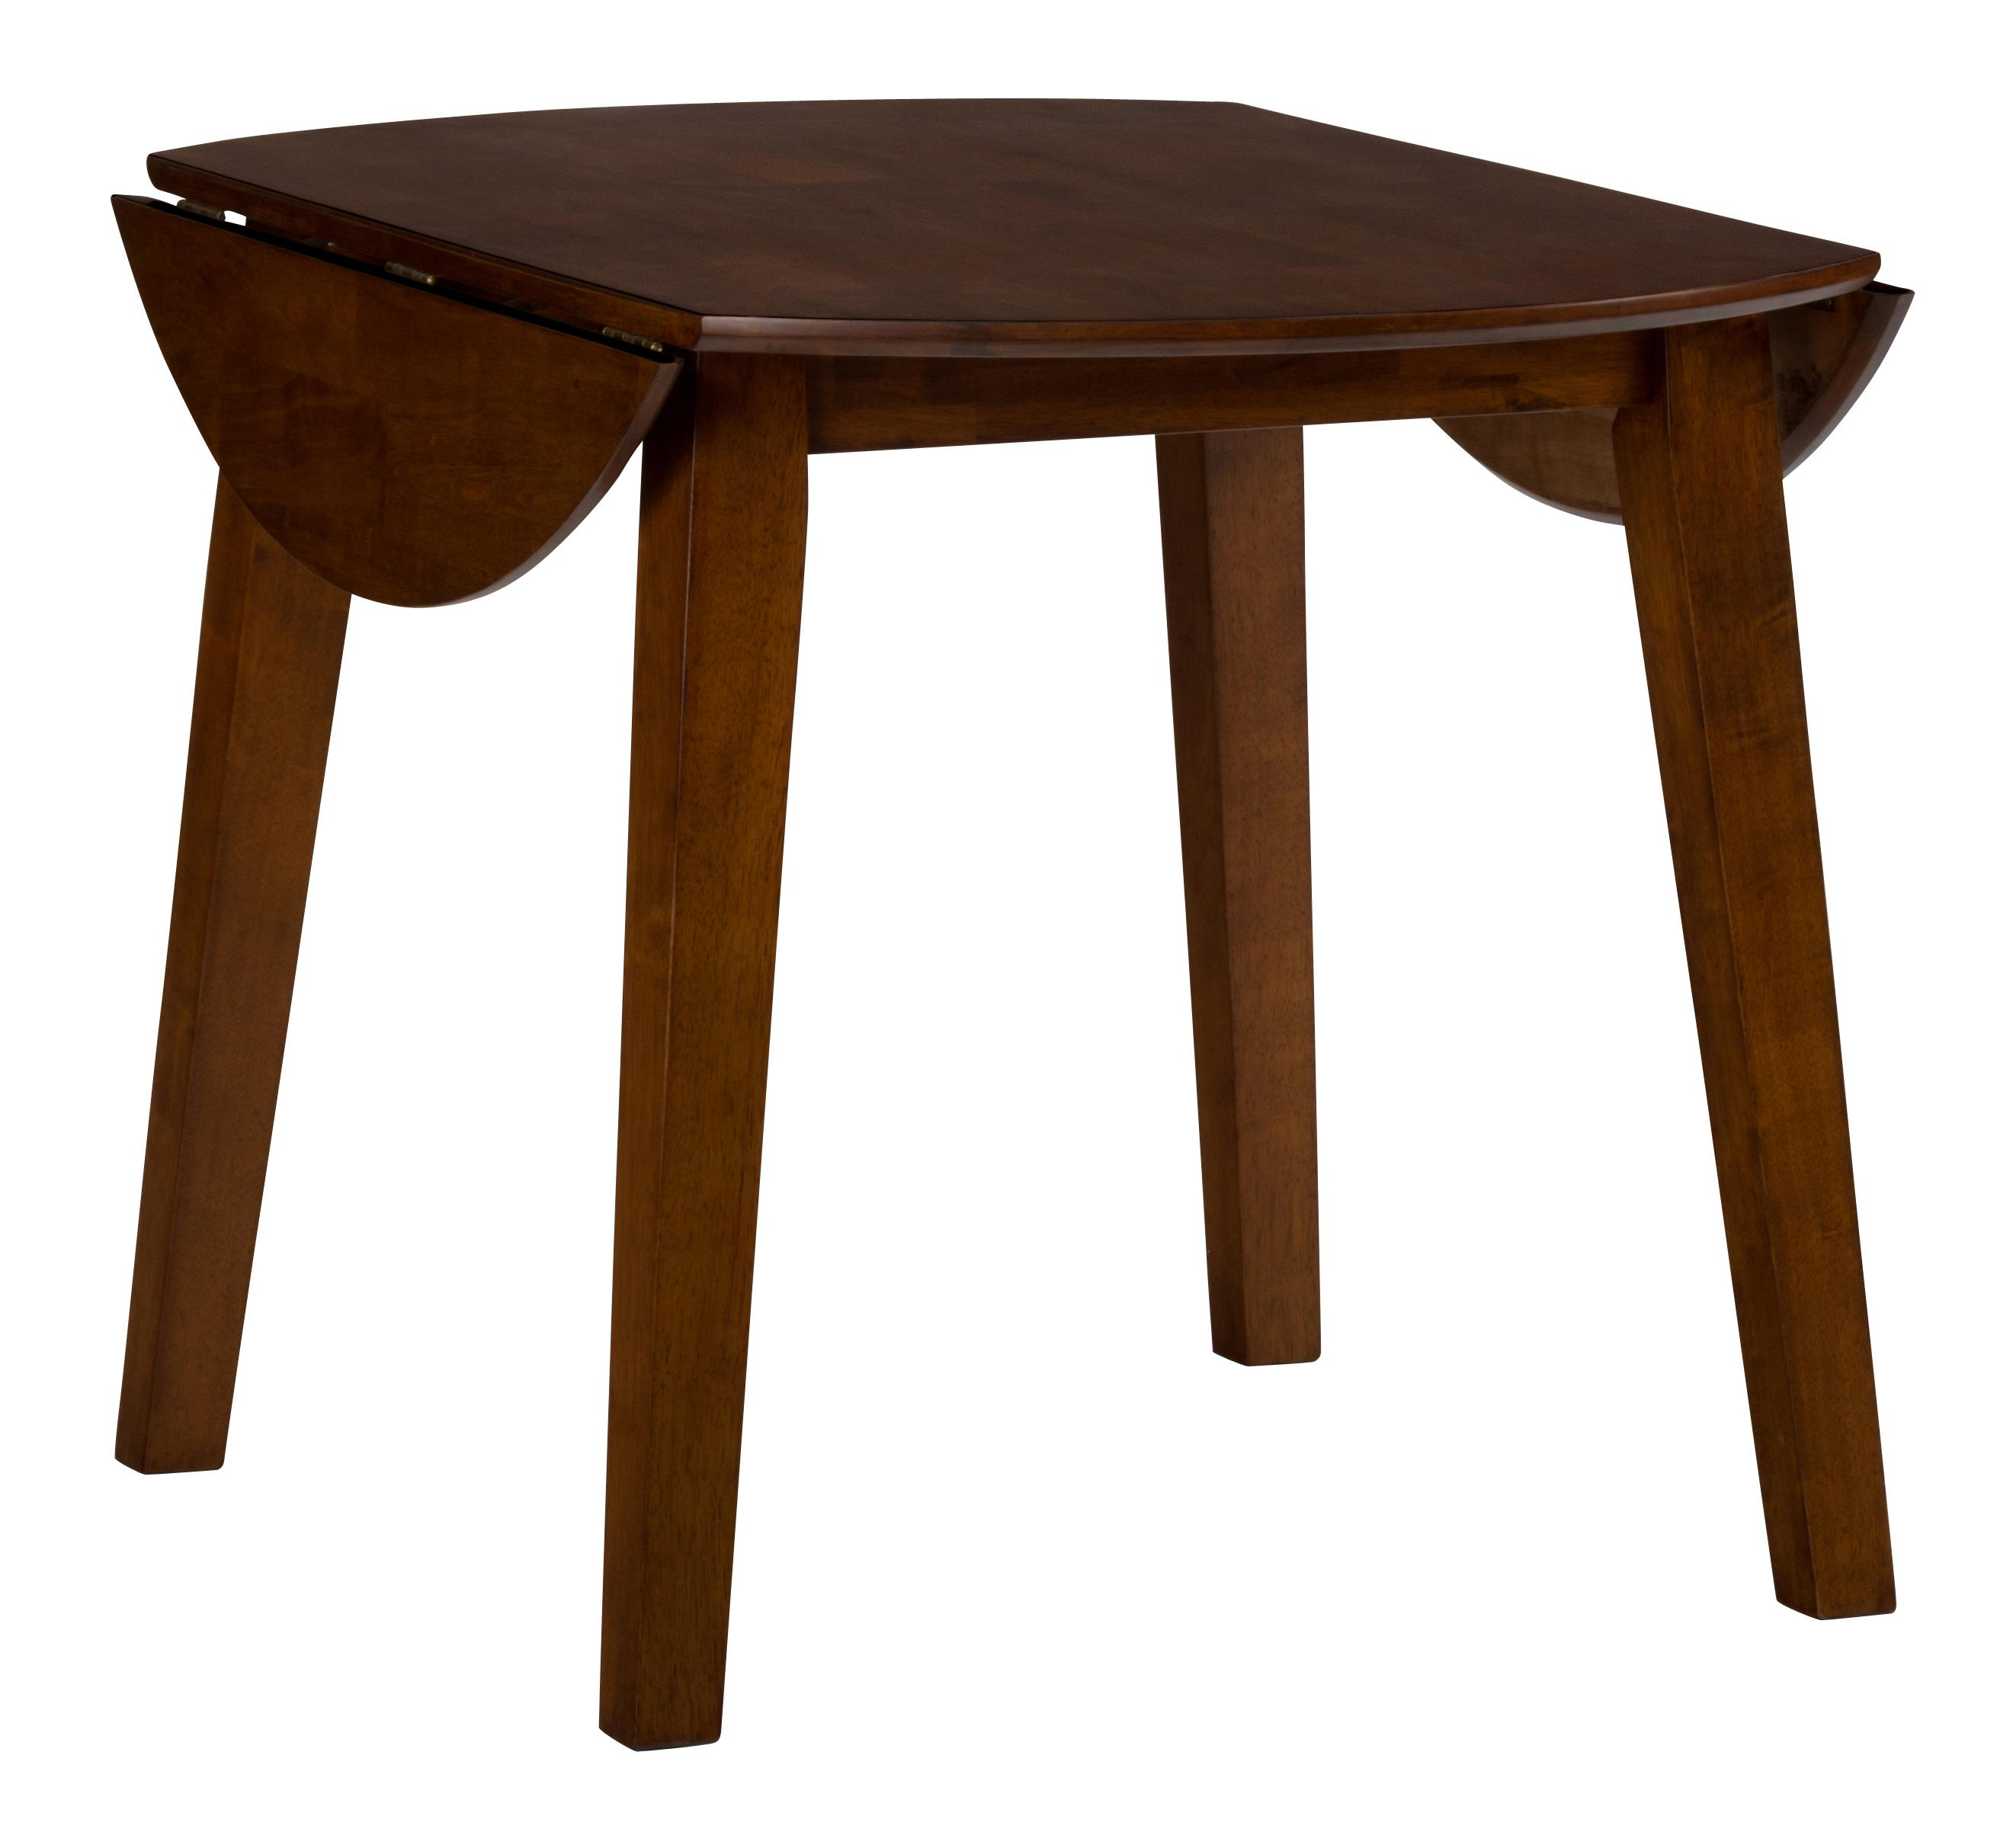 3x3x3 Caramel Round Drop Leaf Table that Seats 4 for  : products2Fjofran2Fcolor2Fsimplicity2035220 2045220 20552452 28 b5 from www.rotmans.com size 2641 x 2425 jpeg 246kB